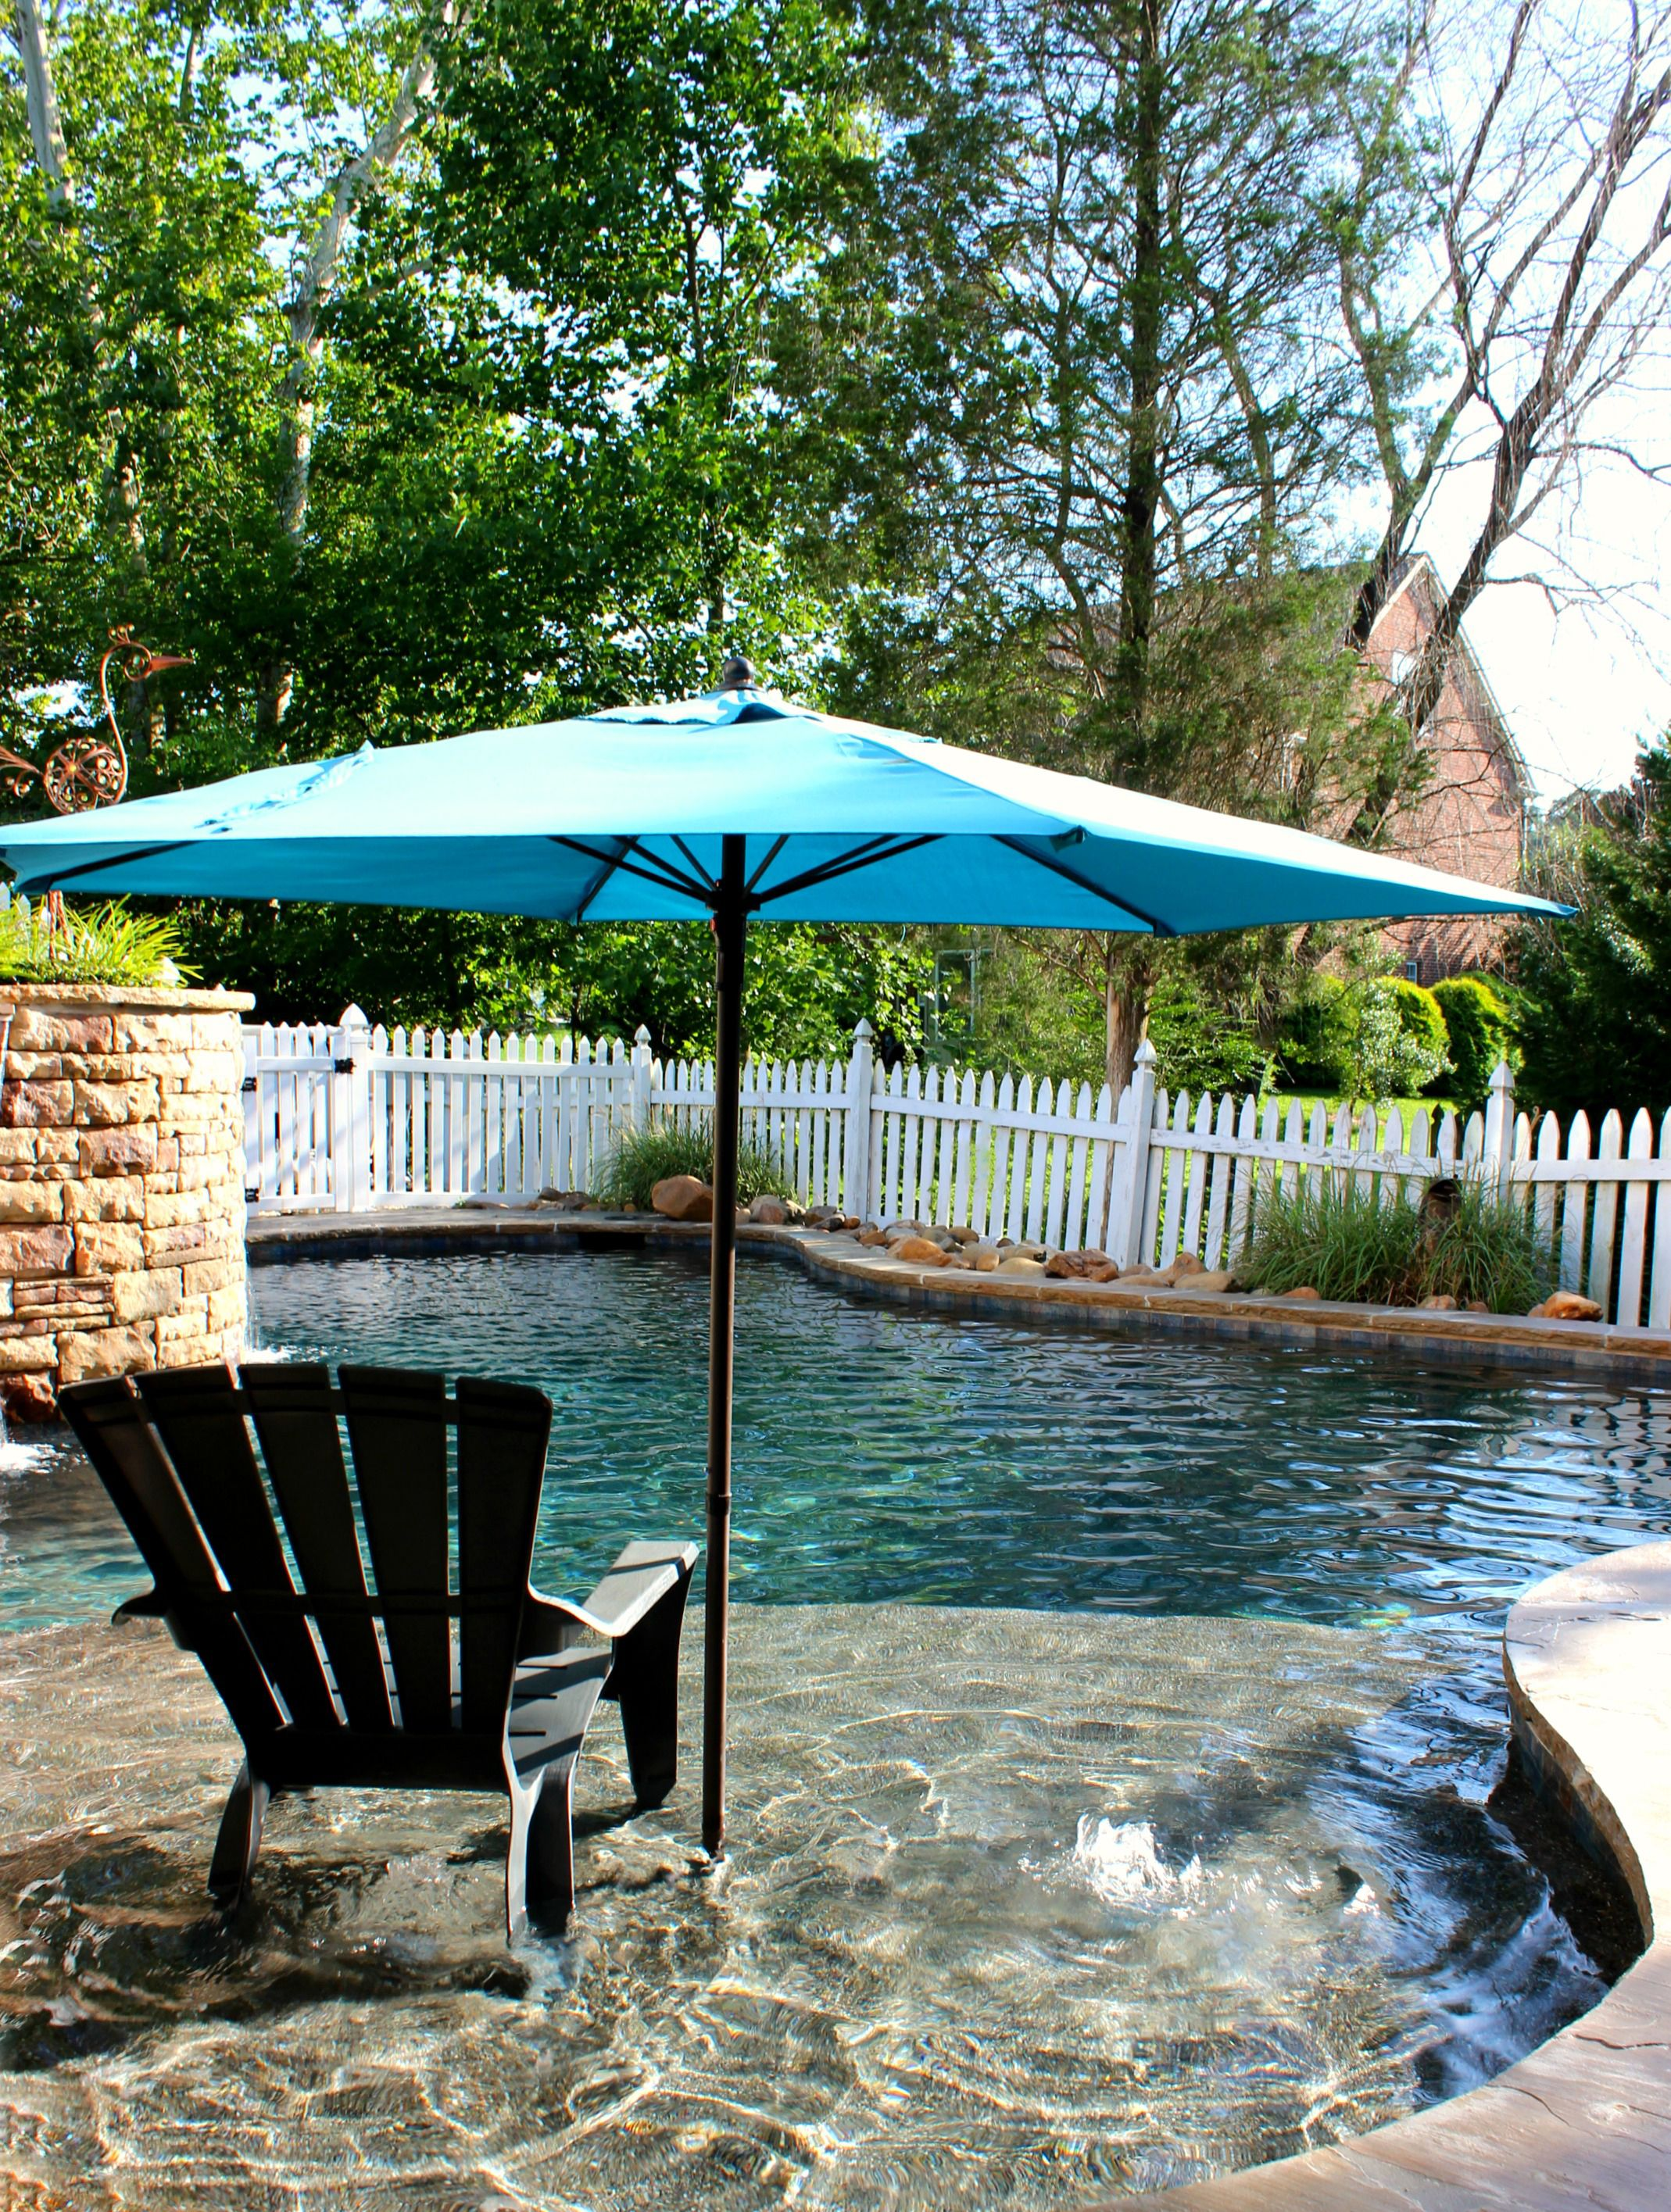 Tanning ledge with bubblers and umbrella stand featured in a ...